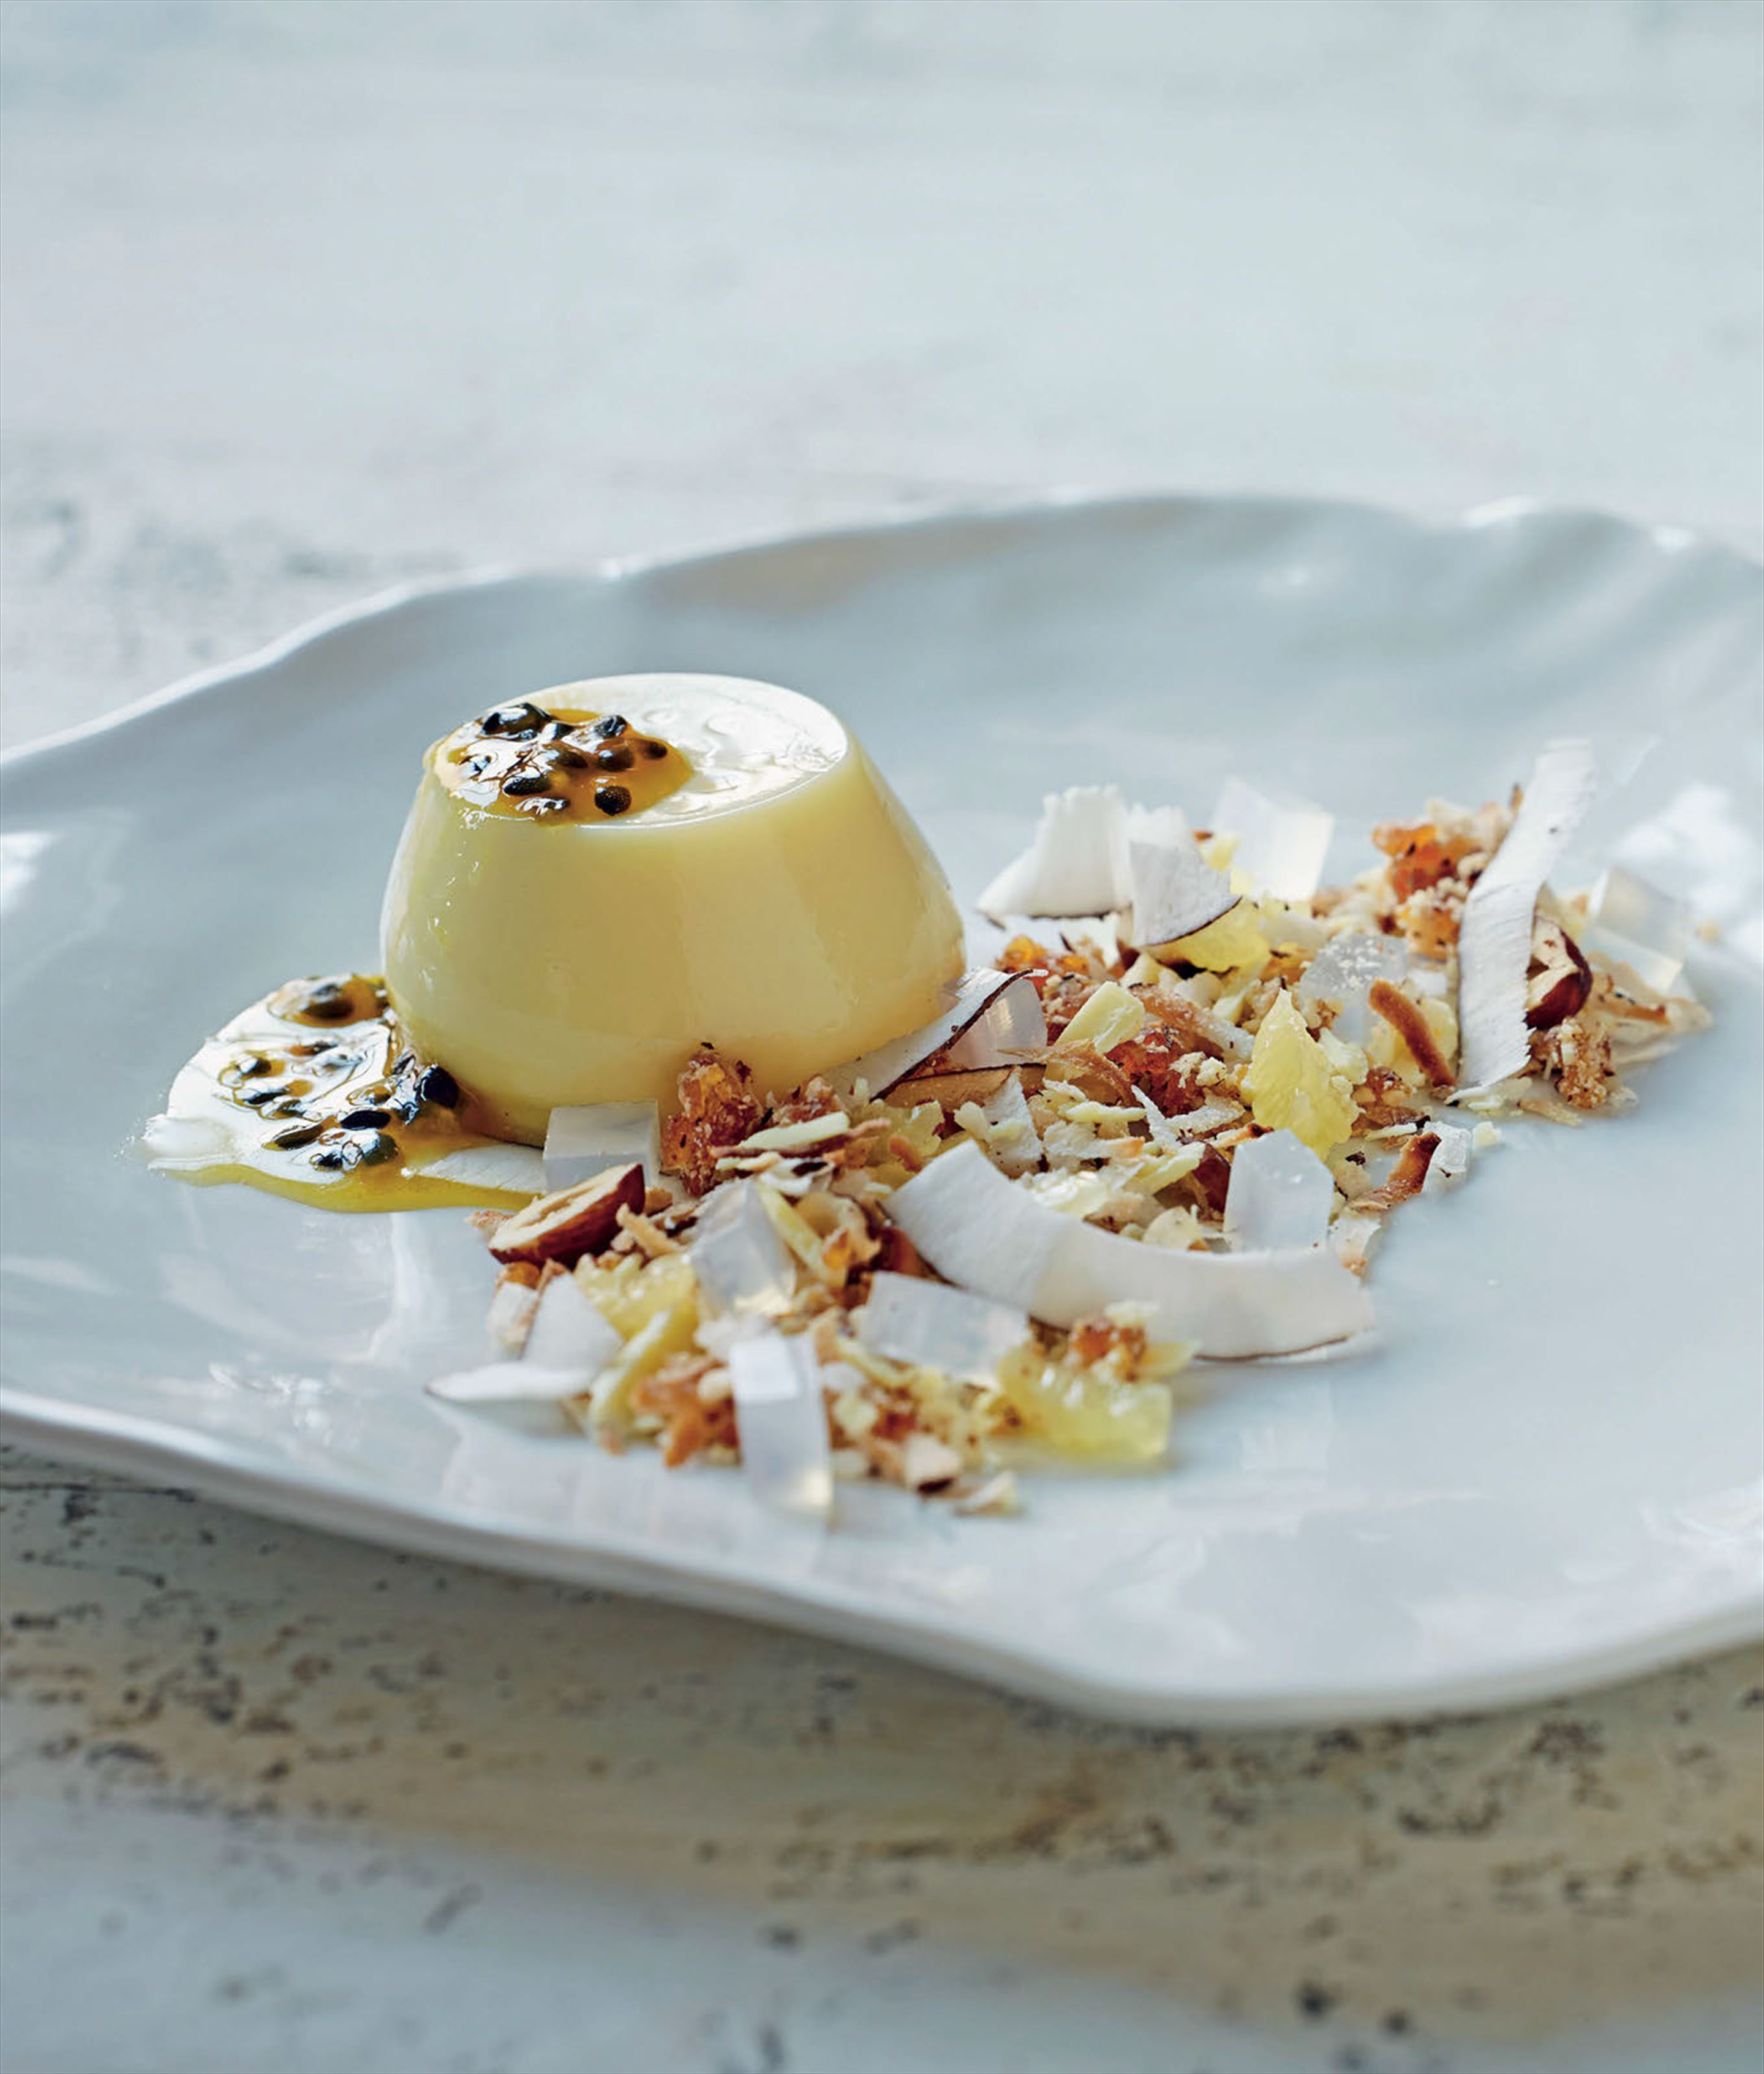 White chocolate panna cotta with coconut crumble and passionfruit syrup